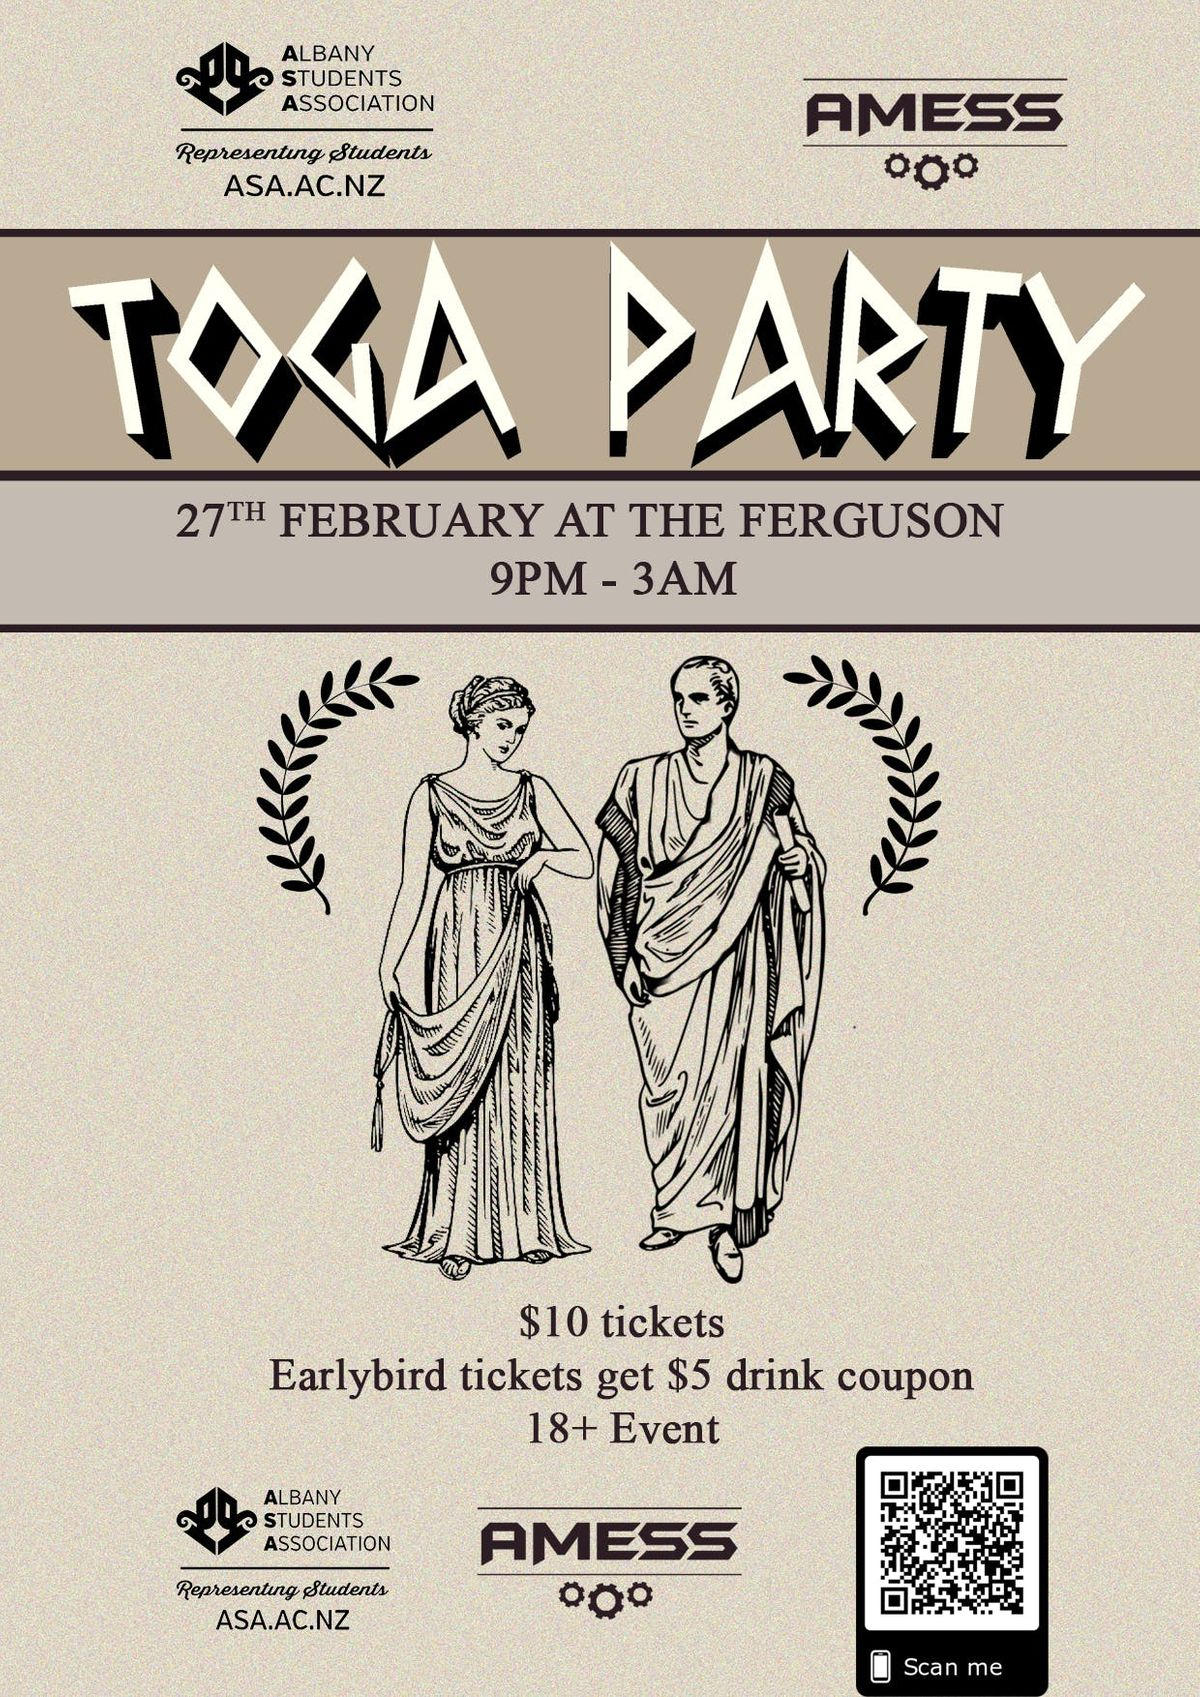 Massey Albany 2019 Toga Party